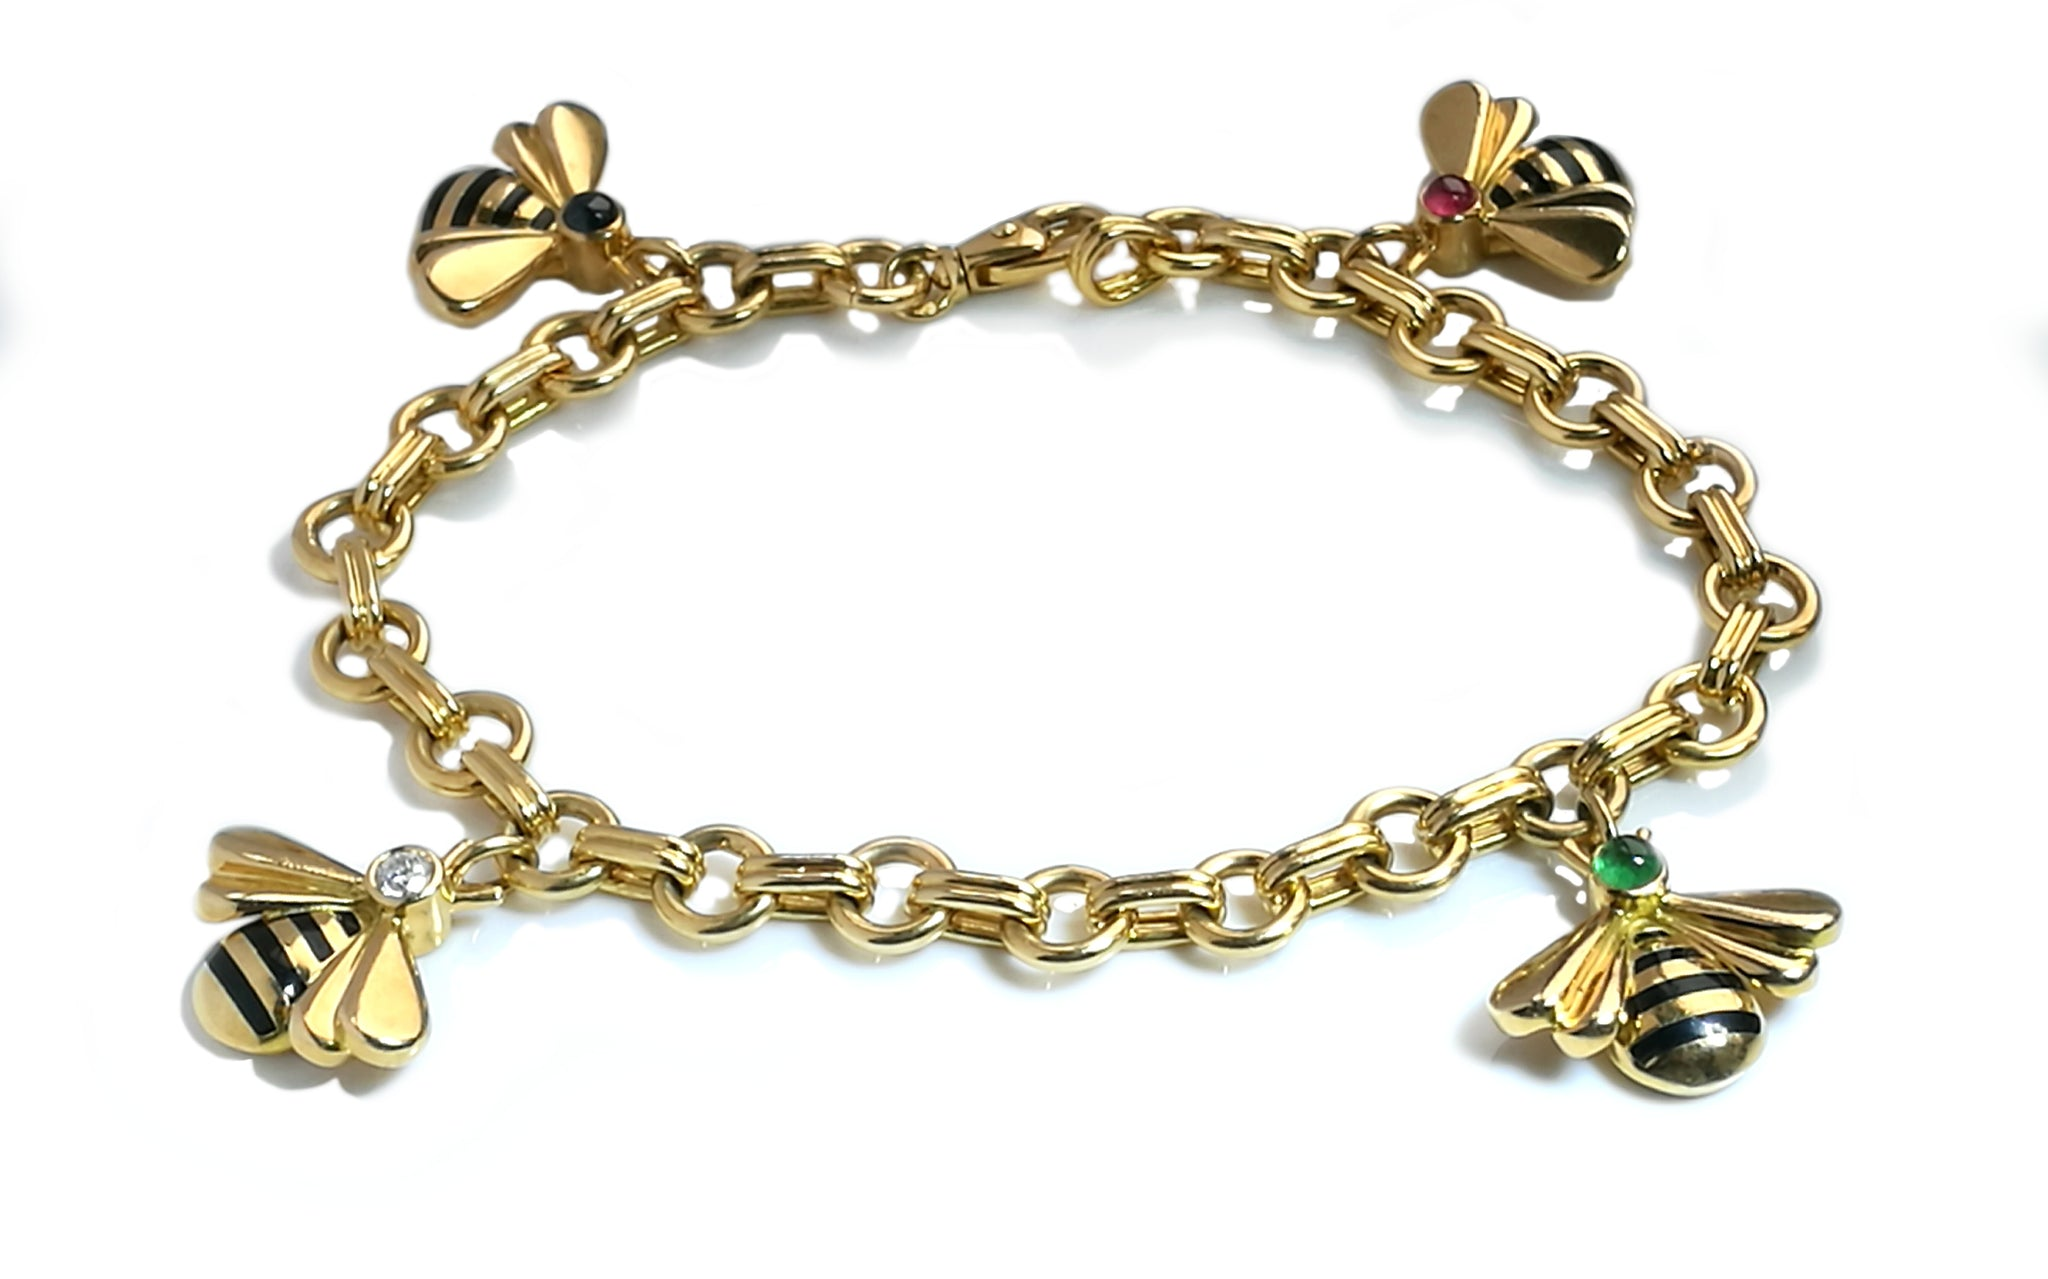 Vintage 1990 Cartier Bumble Bee Diamond Charm Bracelet 18k Yellow Gold 7 inch